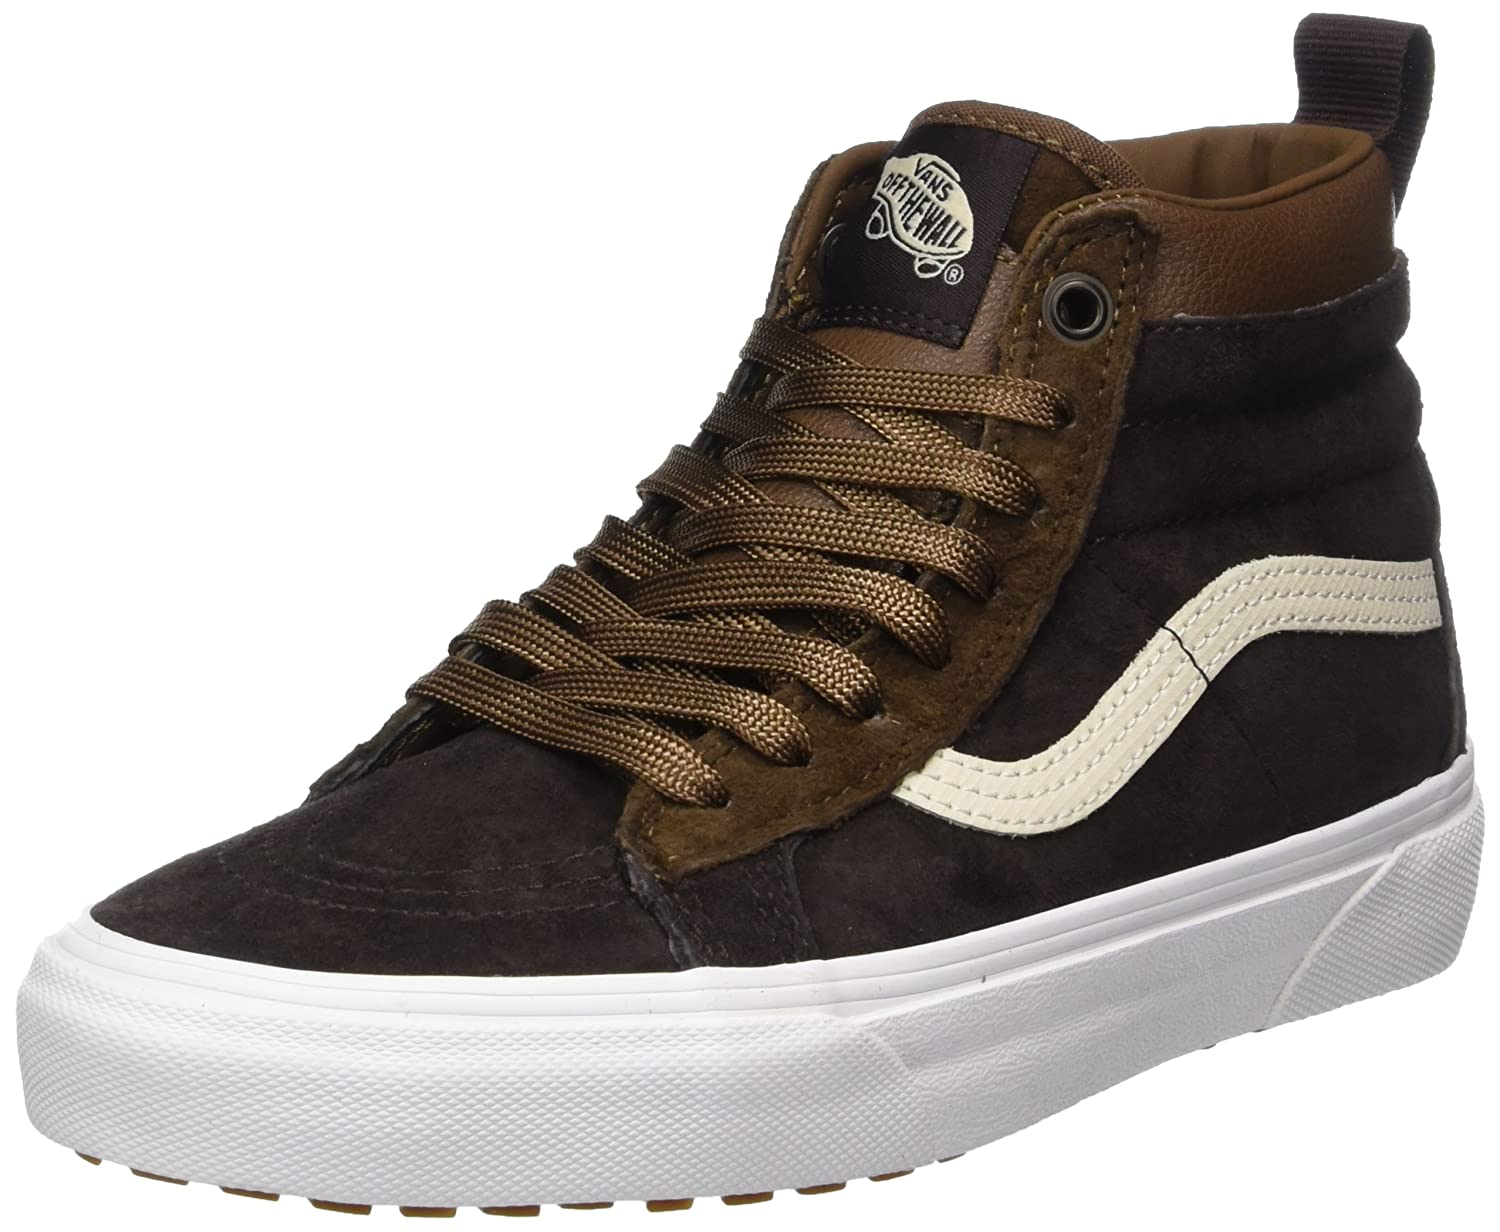 Vans Sk8-Hi MTE, Zapatillas Unisex Adulto 35 EU|Marrón (Mte/ Dark Earth/Seal Brown)